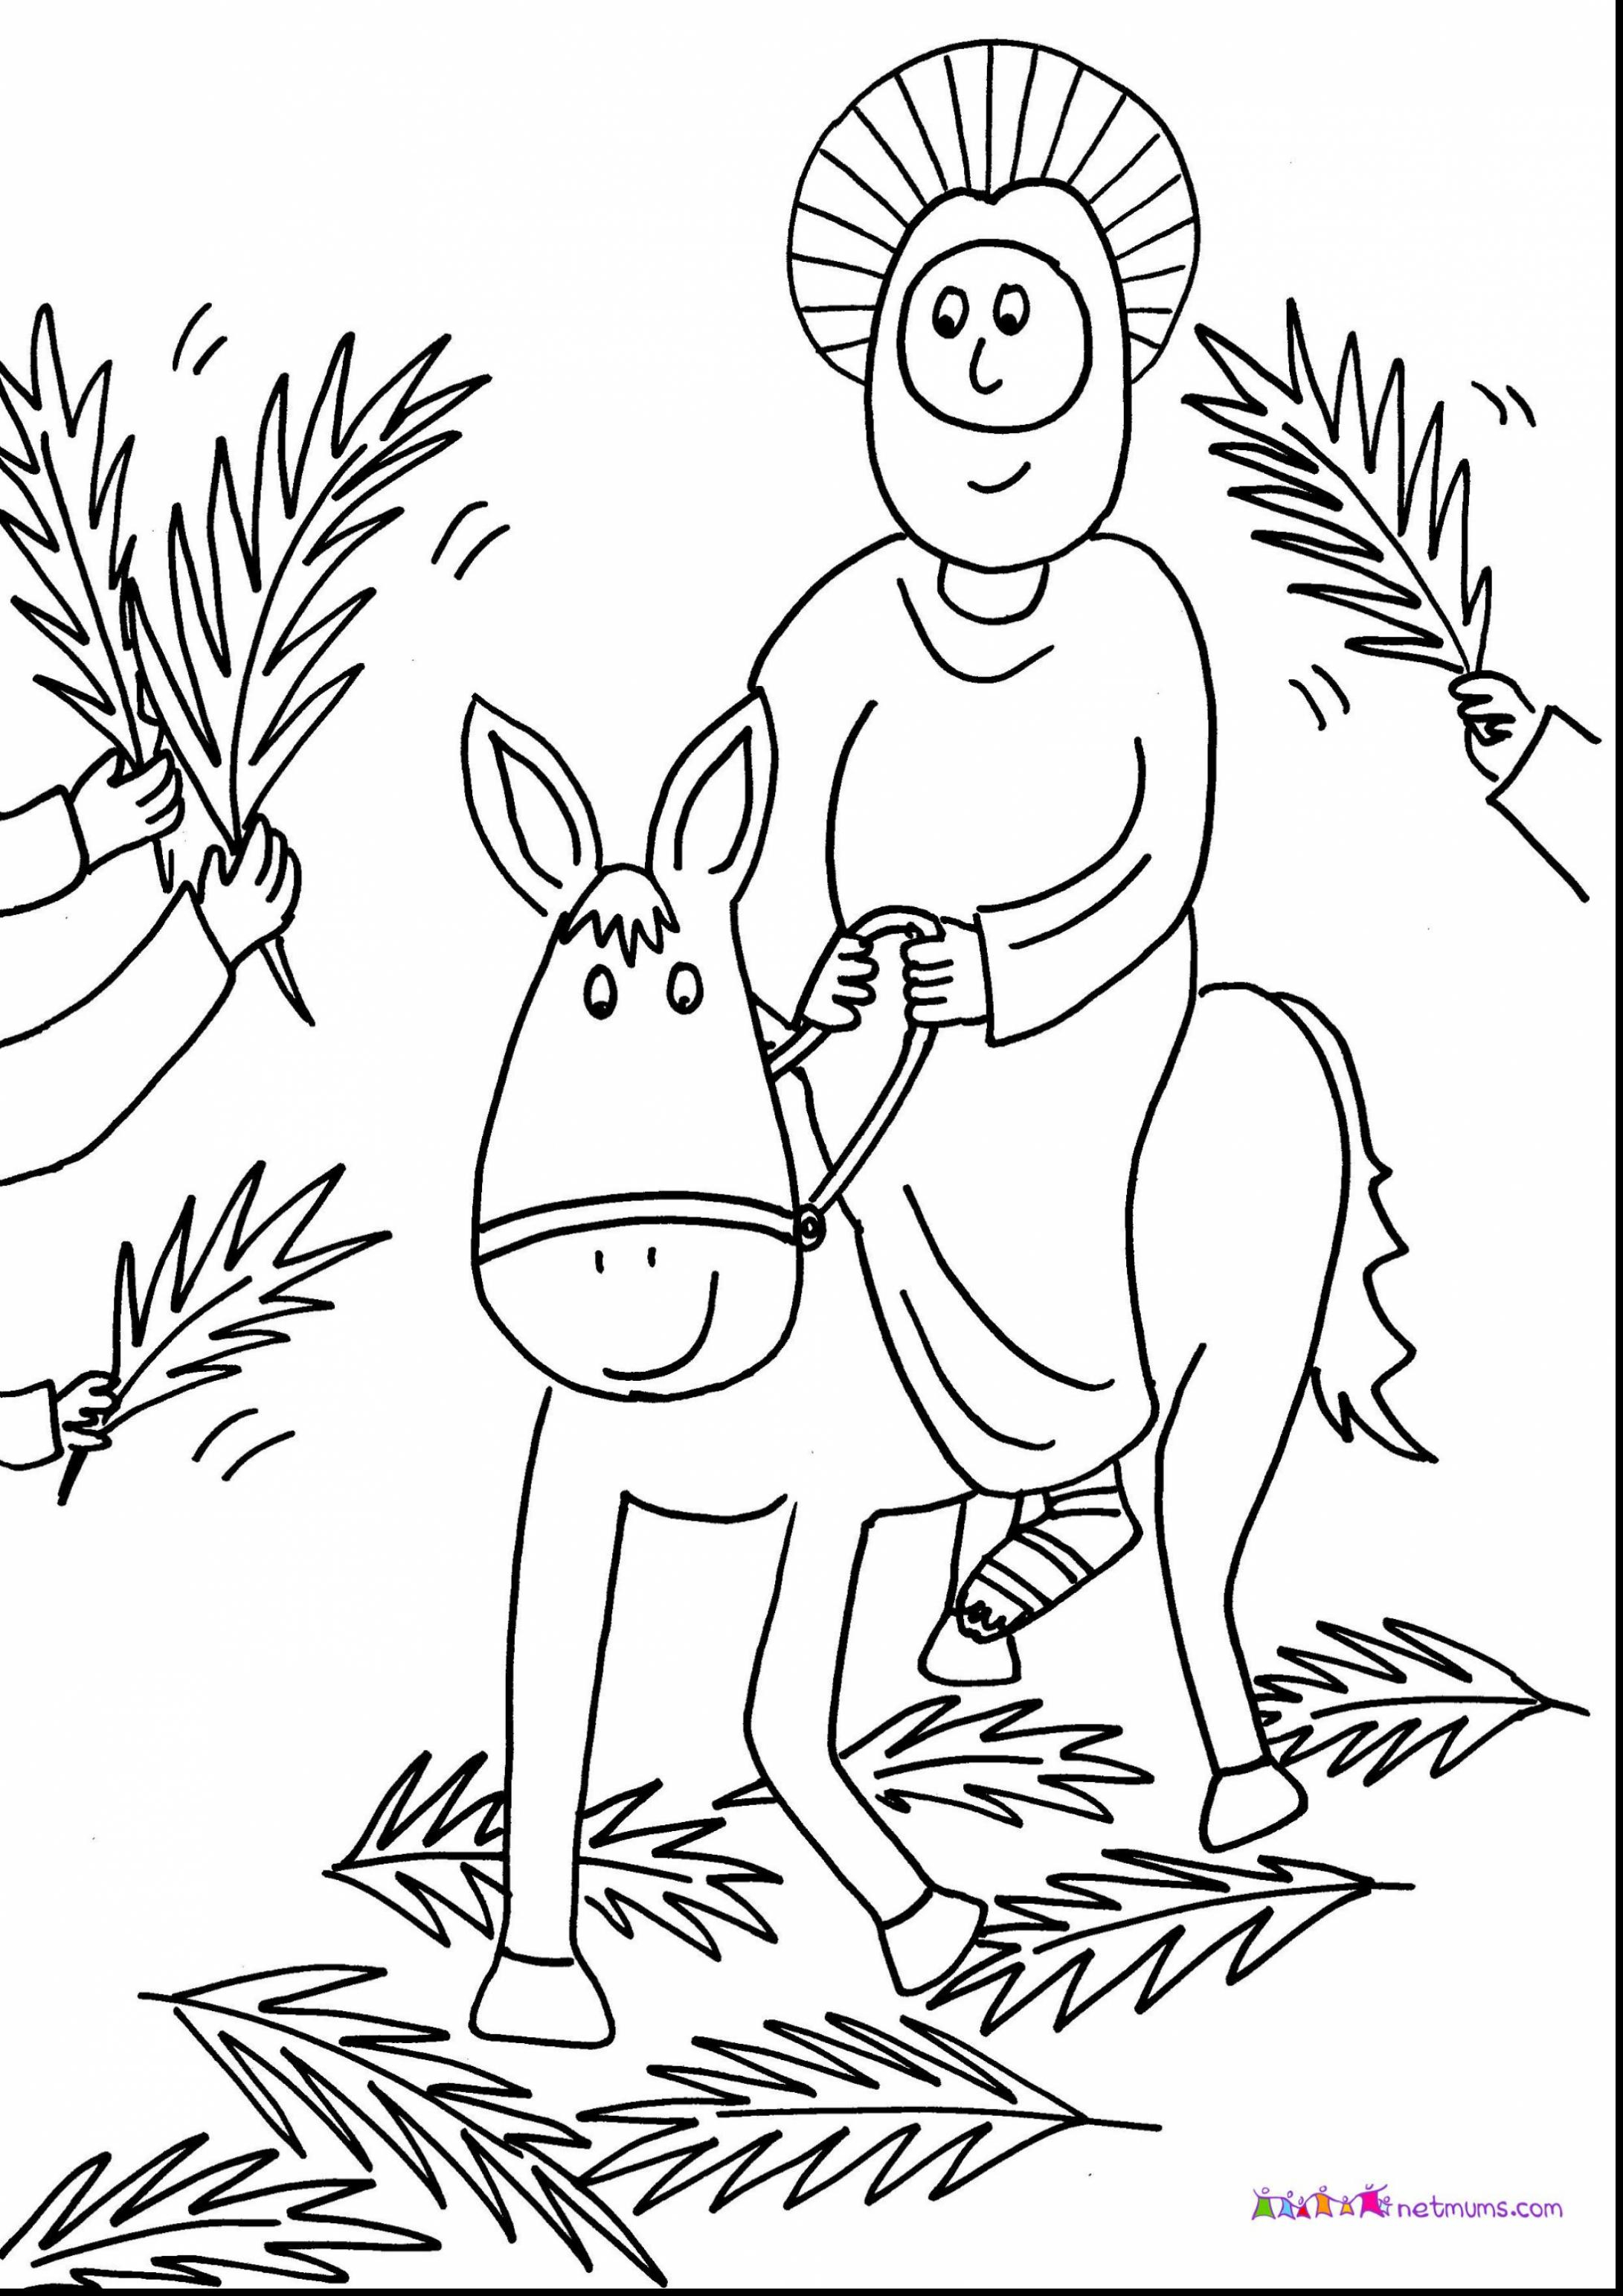 Jesus Easter Coloring Pages Printable Printable Religious Easter Coloring Pages At Getdrawings Free